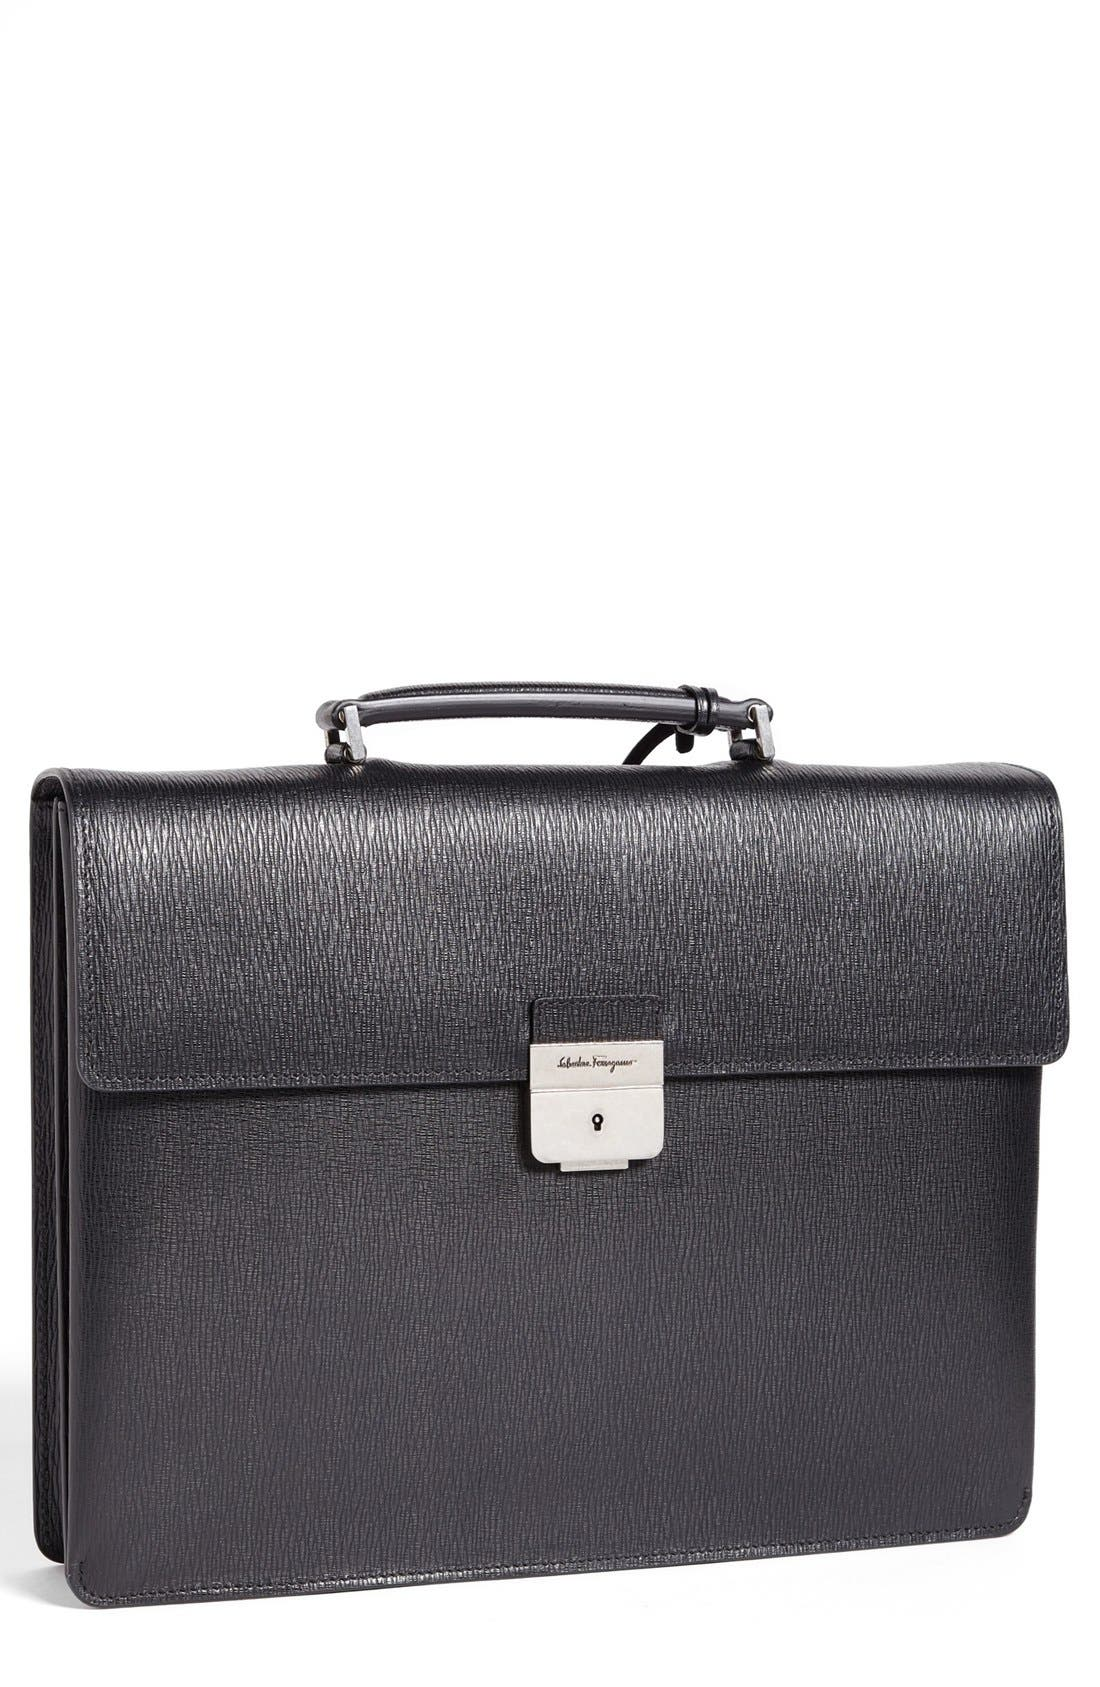 Main Image - Salvatore Ferragamo 'Revival' Briefcase